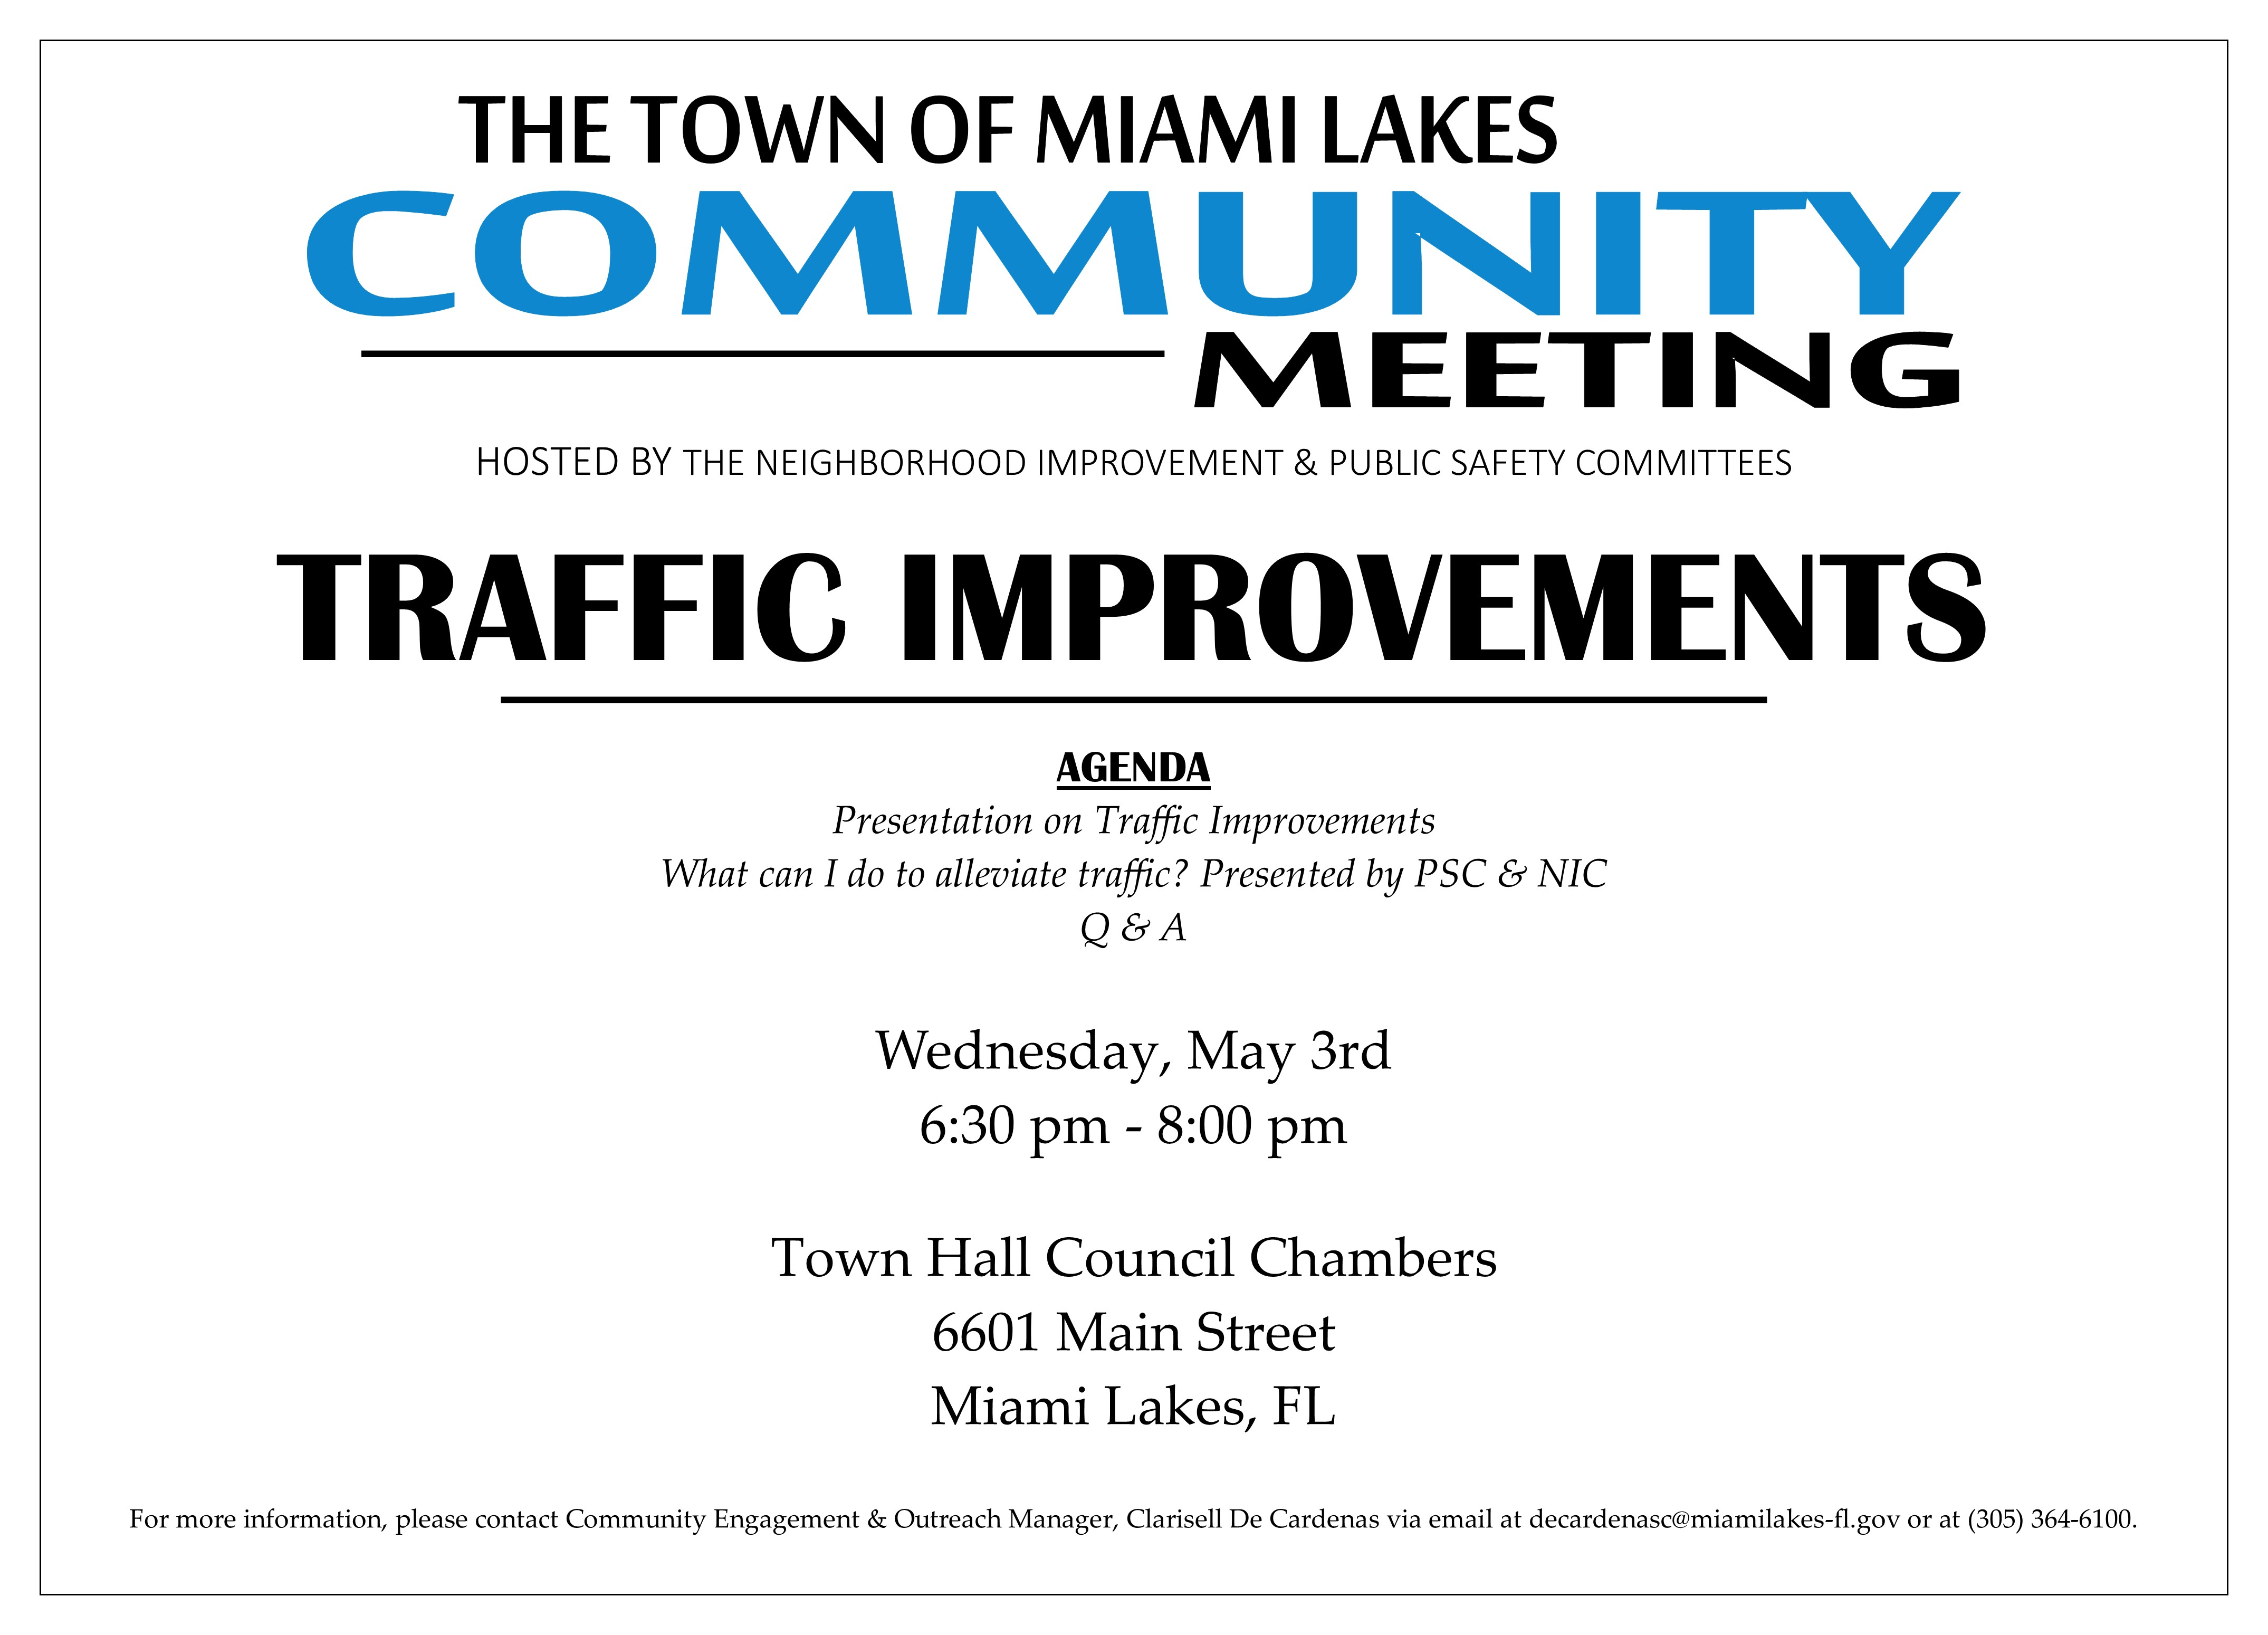 Community Meeting 05.03.2017 Traffic